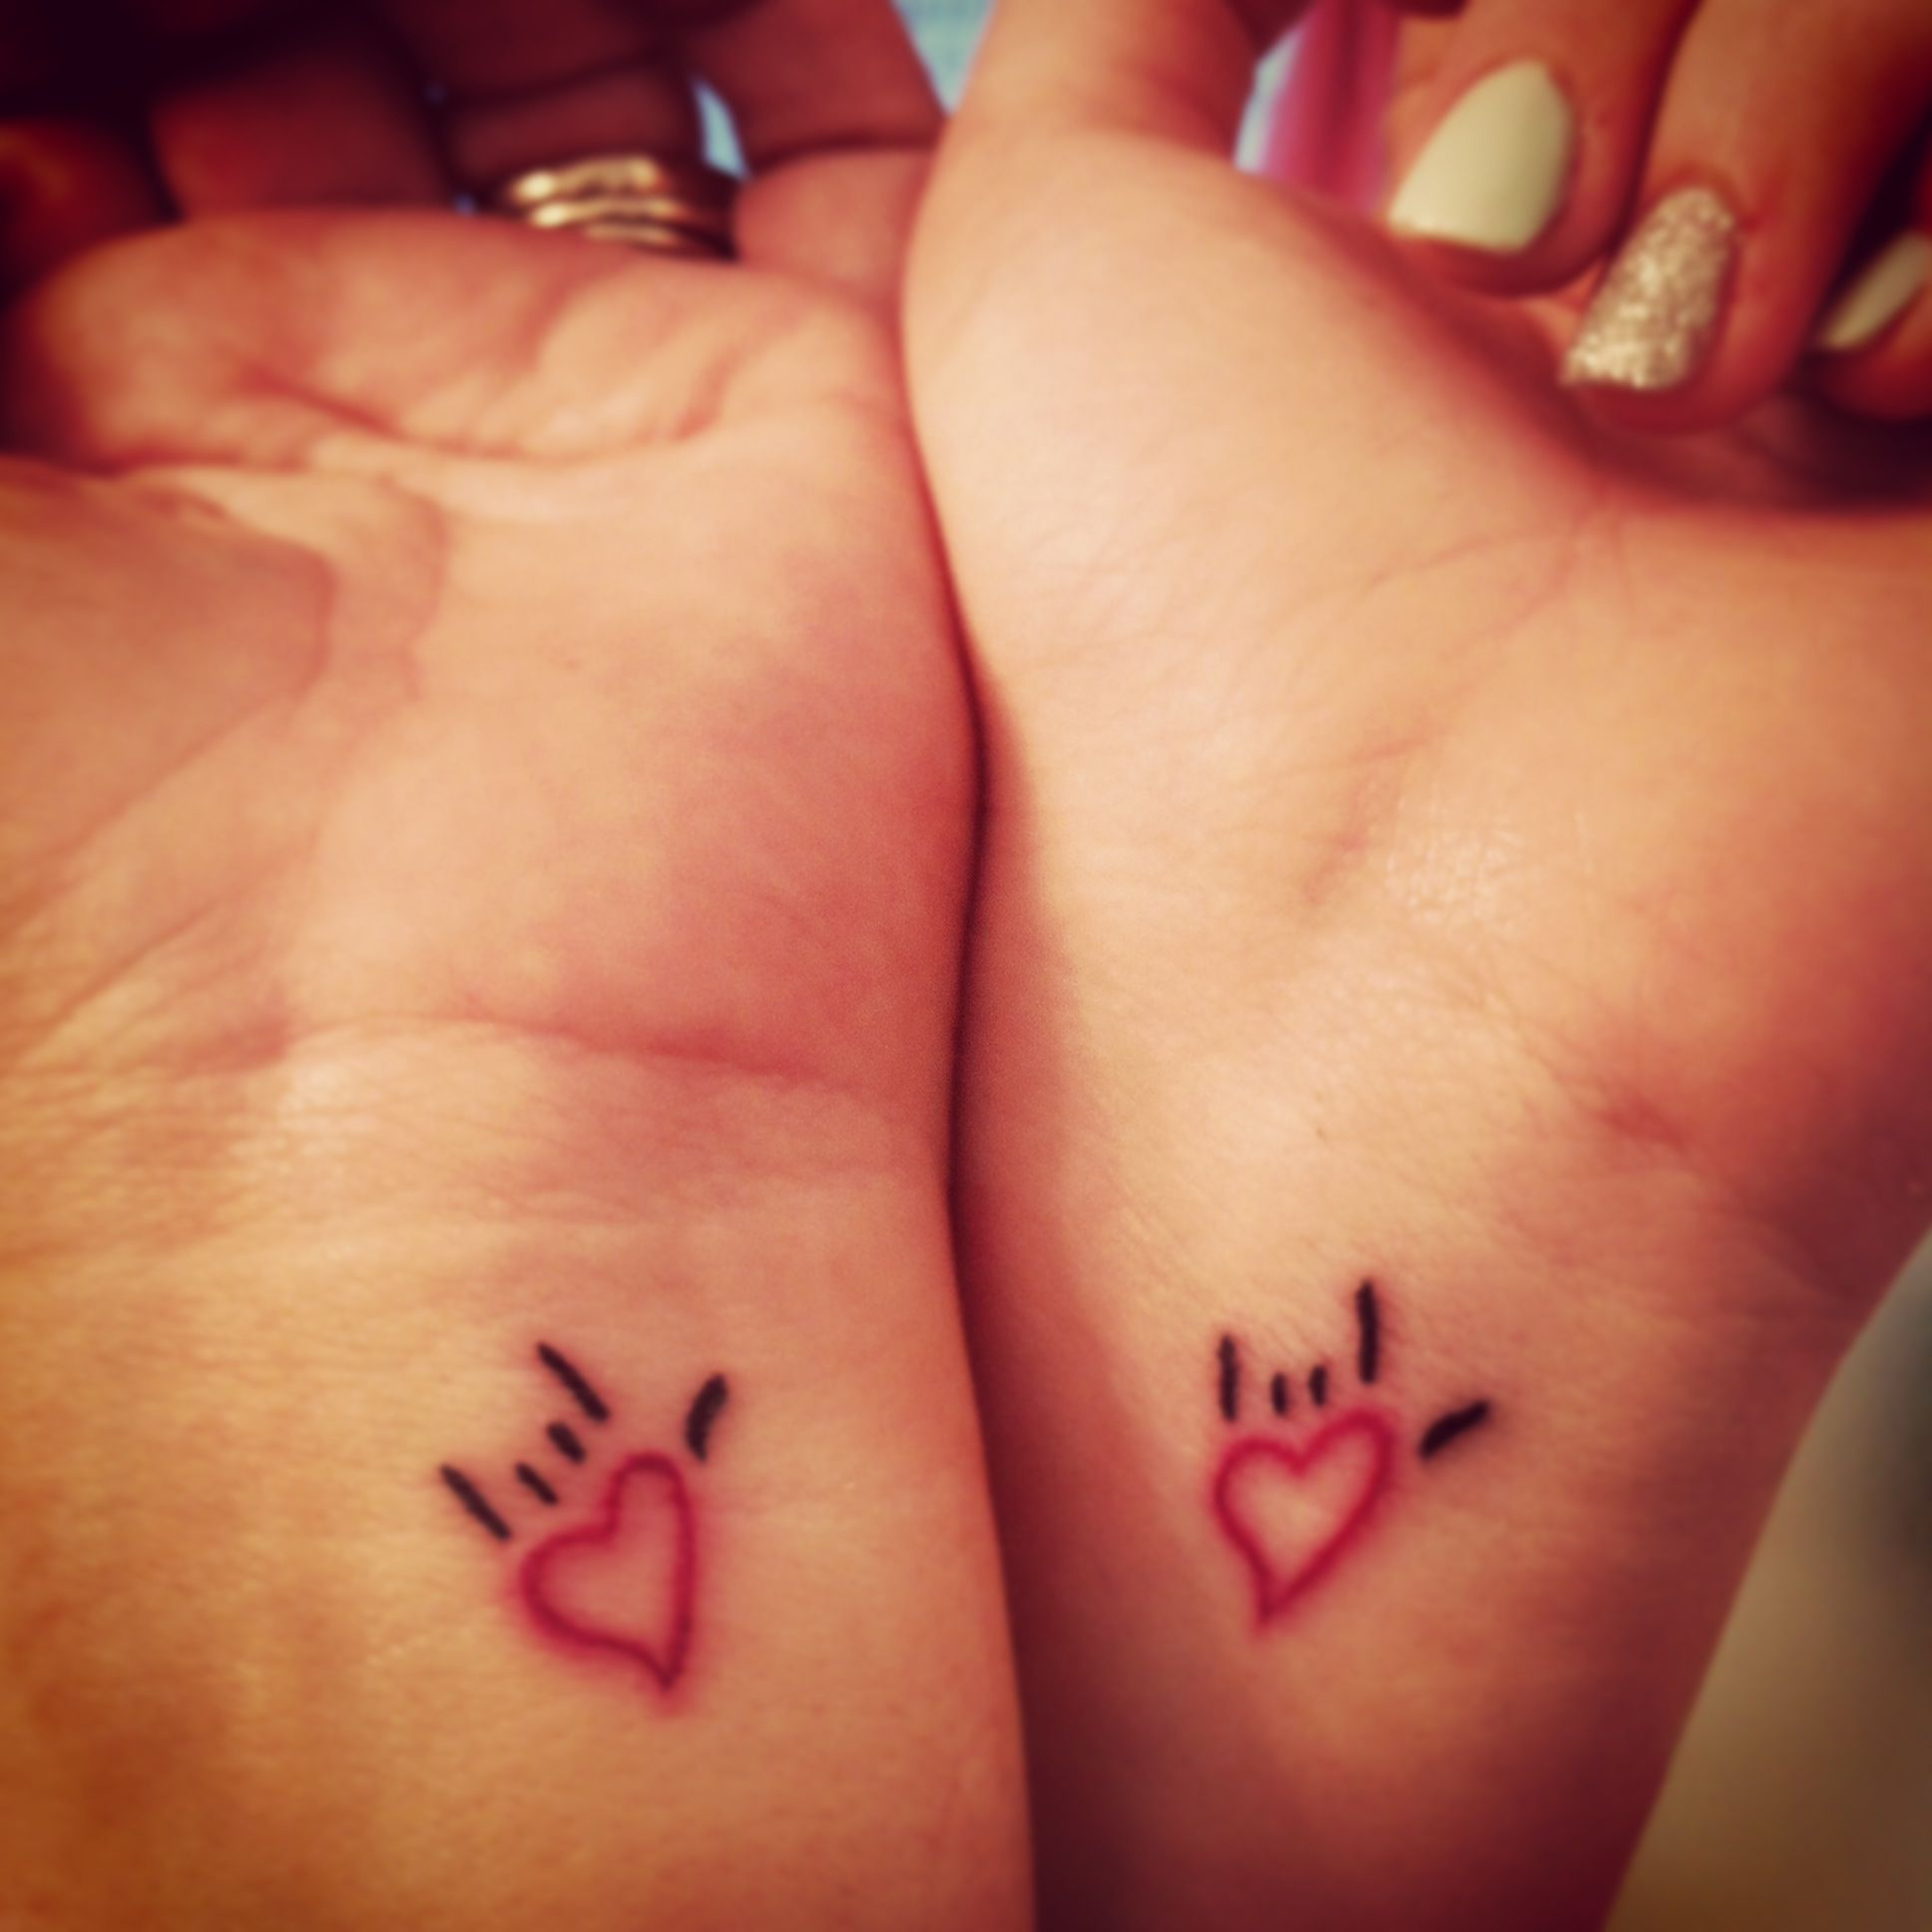 225 Heartwarming Family Tattoo Ideas That Show Your Love: Momma And I Got Matching Tattoos